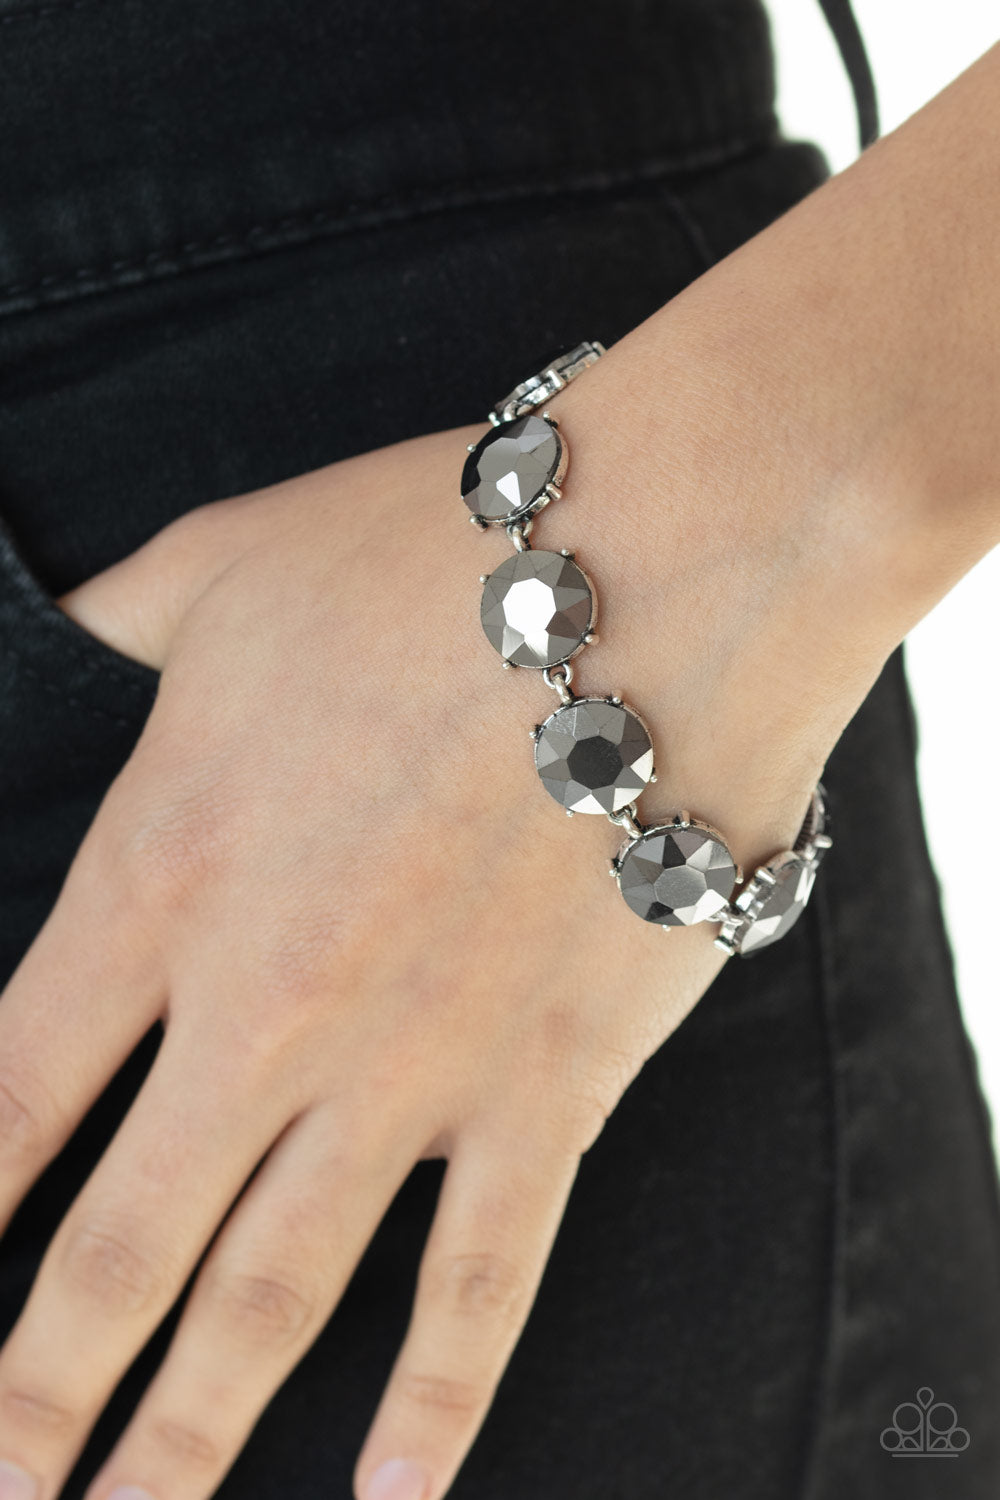 Paparazzi Jewelry & Accessories - Fabulously Flashy - Silver Bracelet. Bling By titia Boutique